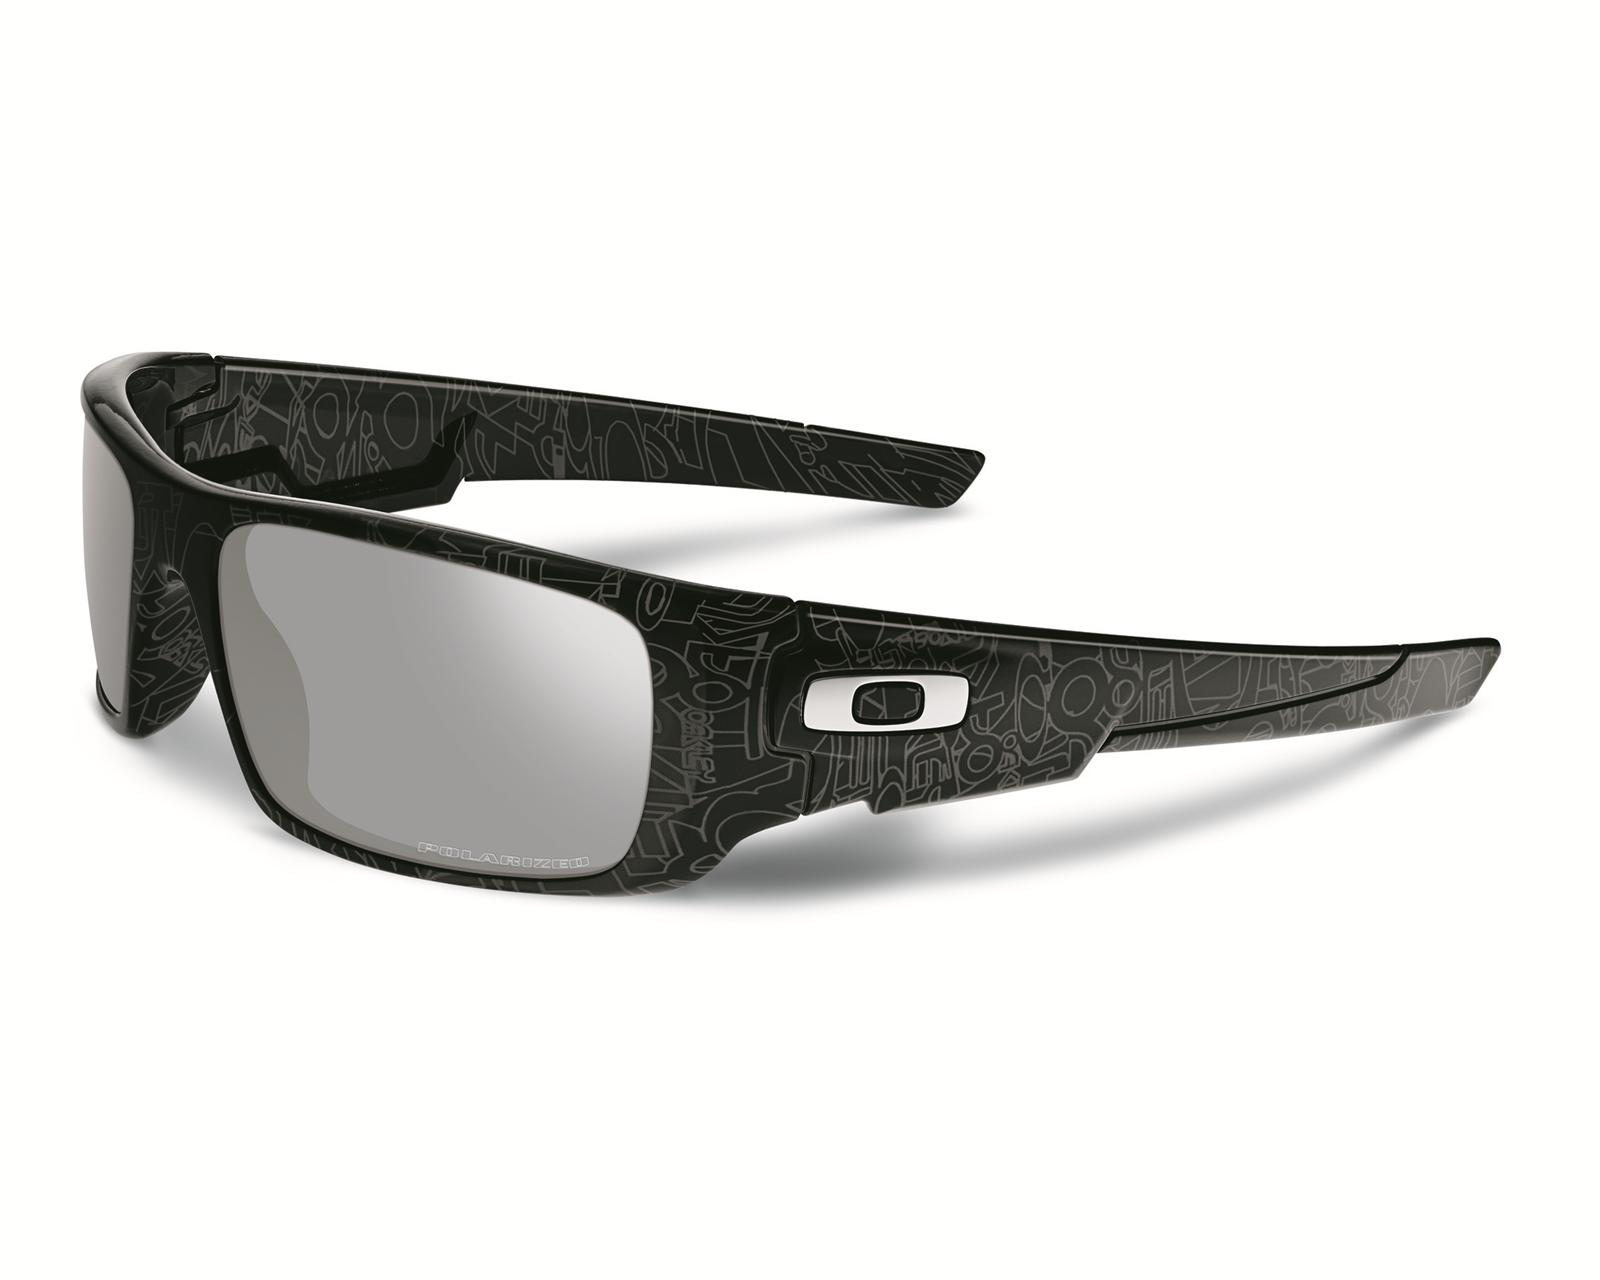 f4cf2a9f98 Oakley Crankshaft Sunglasses OO9239-08 - Free Shipping on Orders Over  99  at Summit Racing